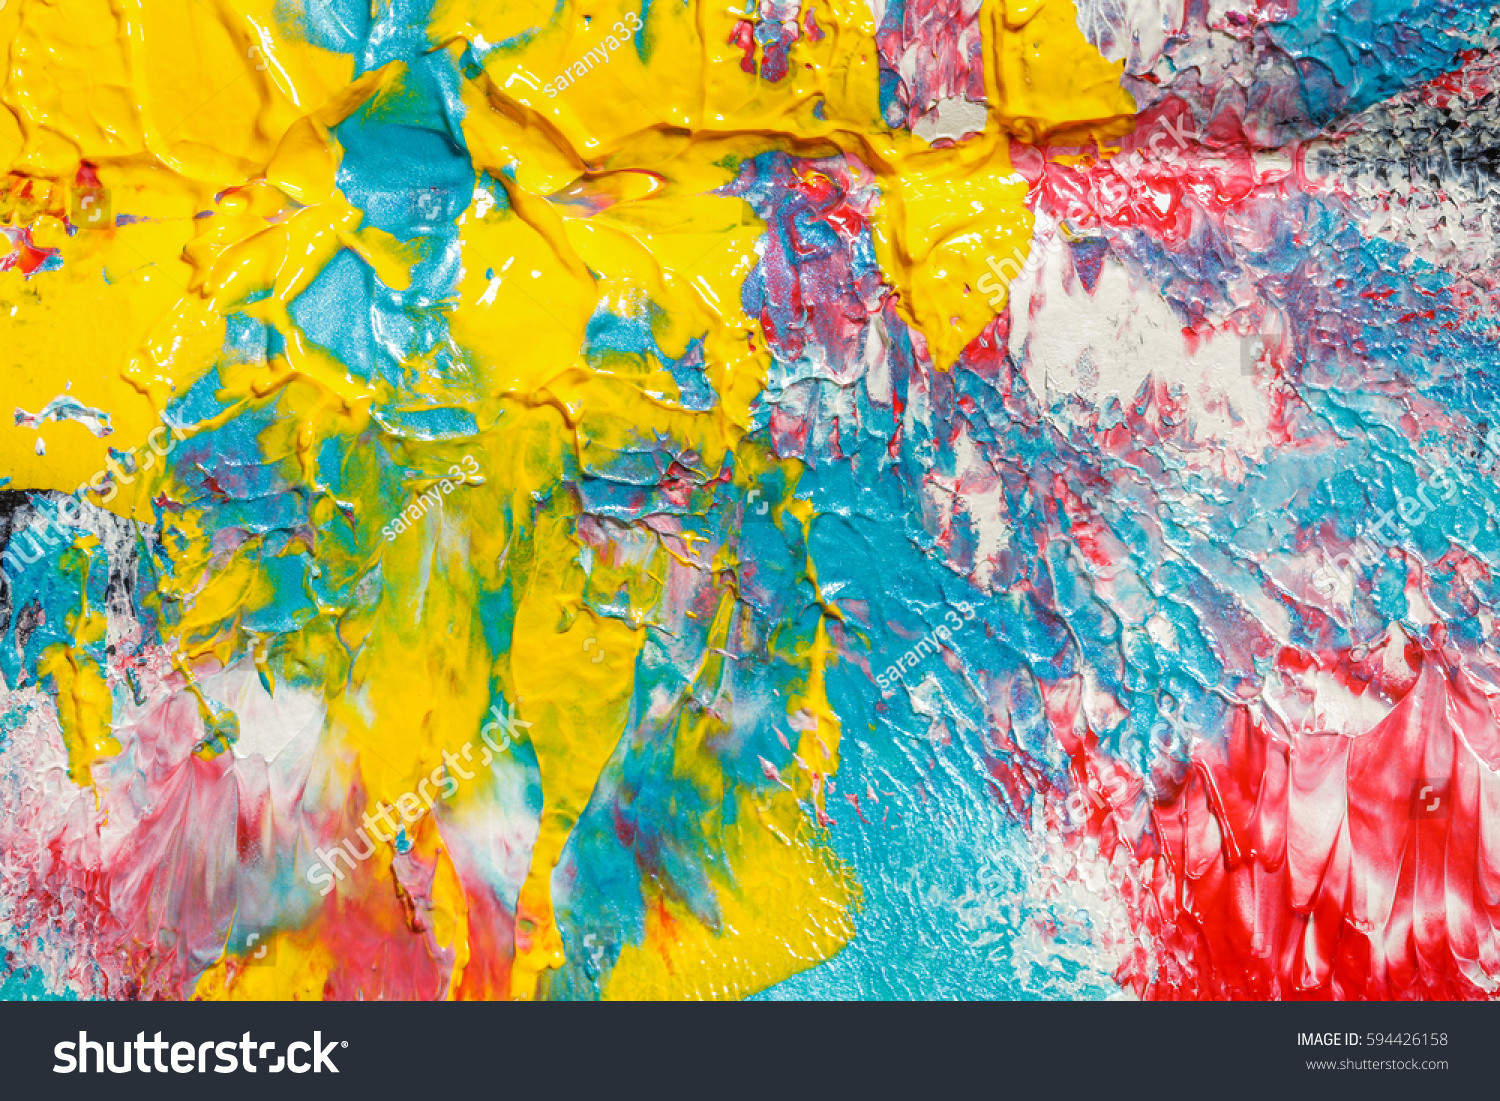 Mixing Merging Single Colors Spread Painting Stock Photo (Edit Now ...